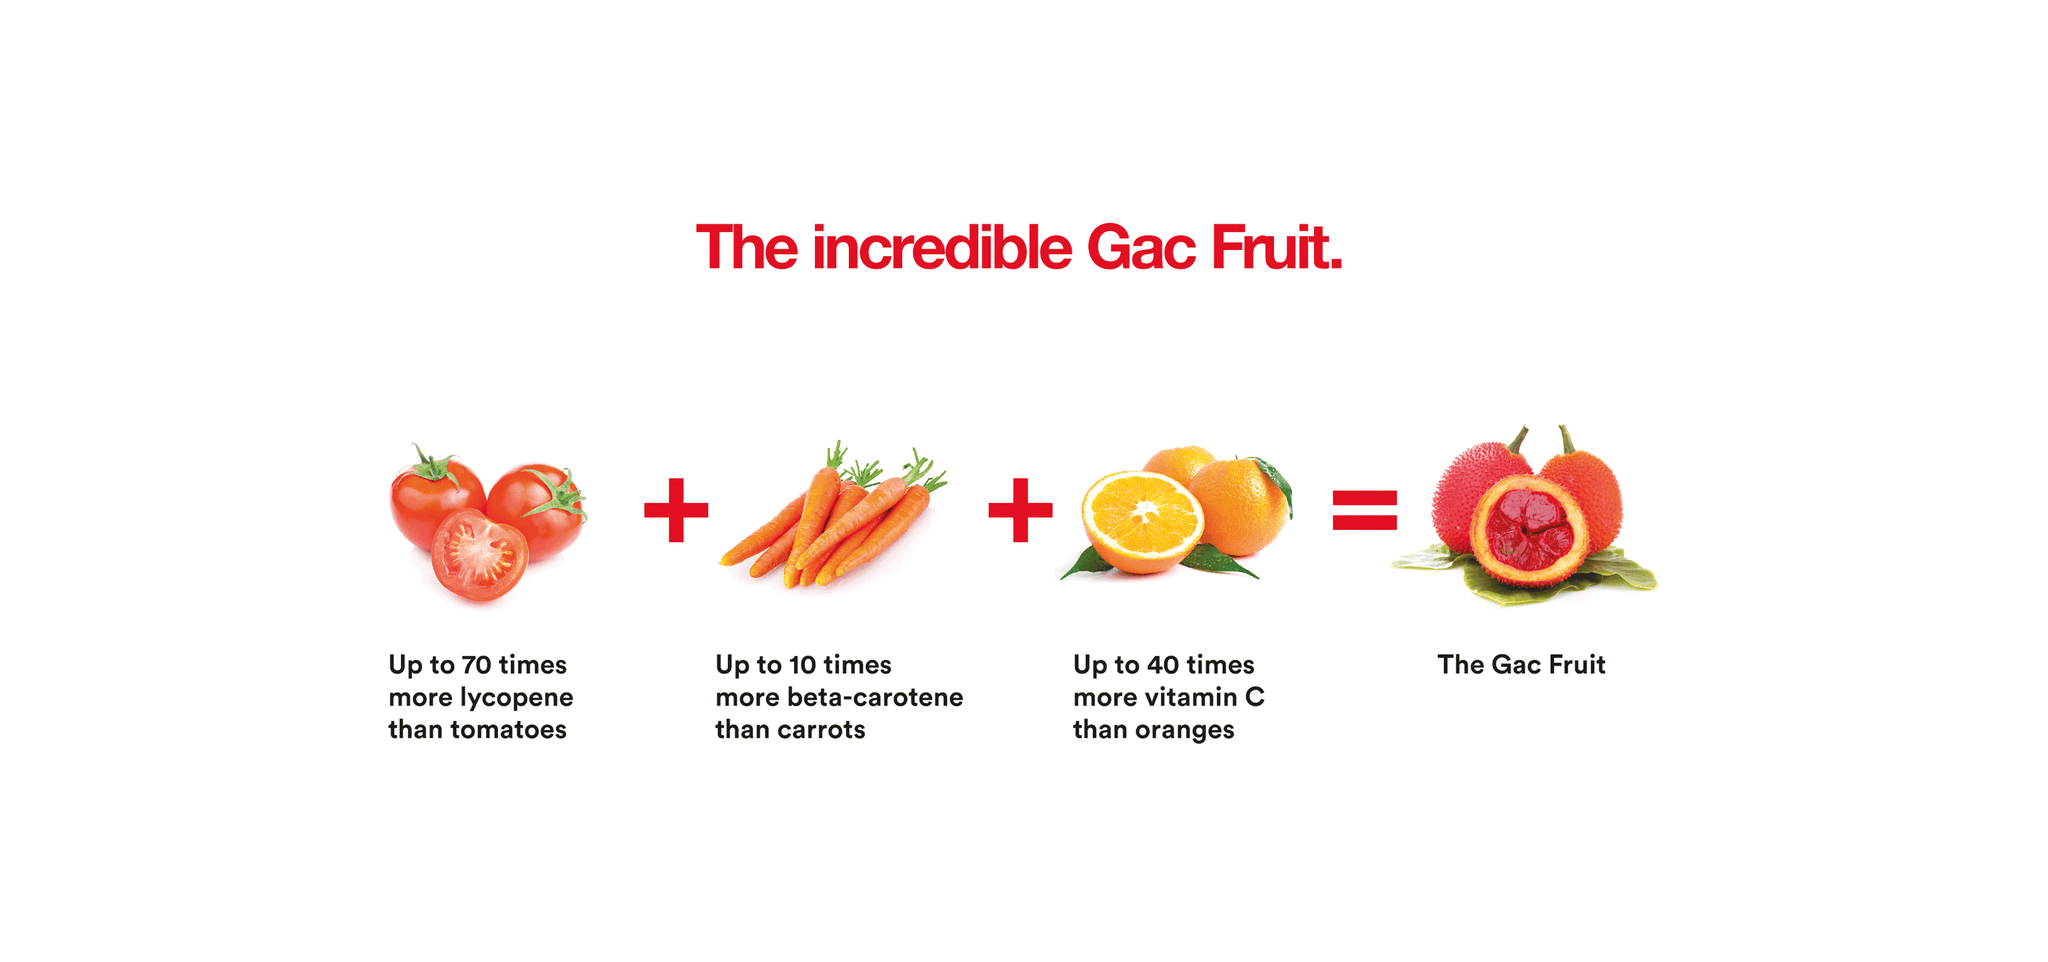 The Incredible Gac Fruit. Vitamins A, E and C. Lycopene and beta-carotene. Oil Capsules sold by Only Gac Fruit in the UK.